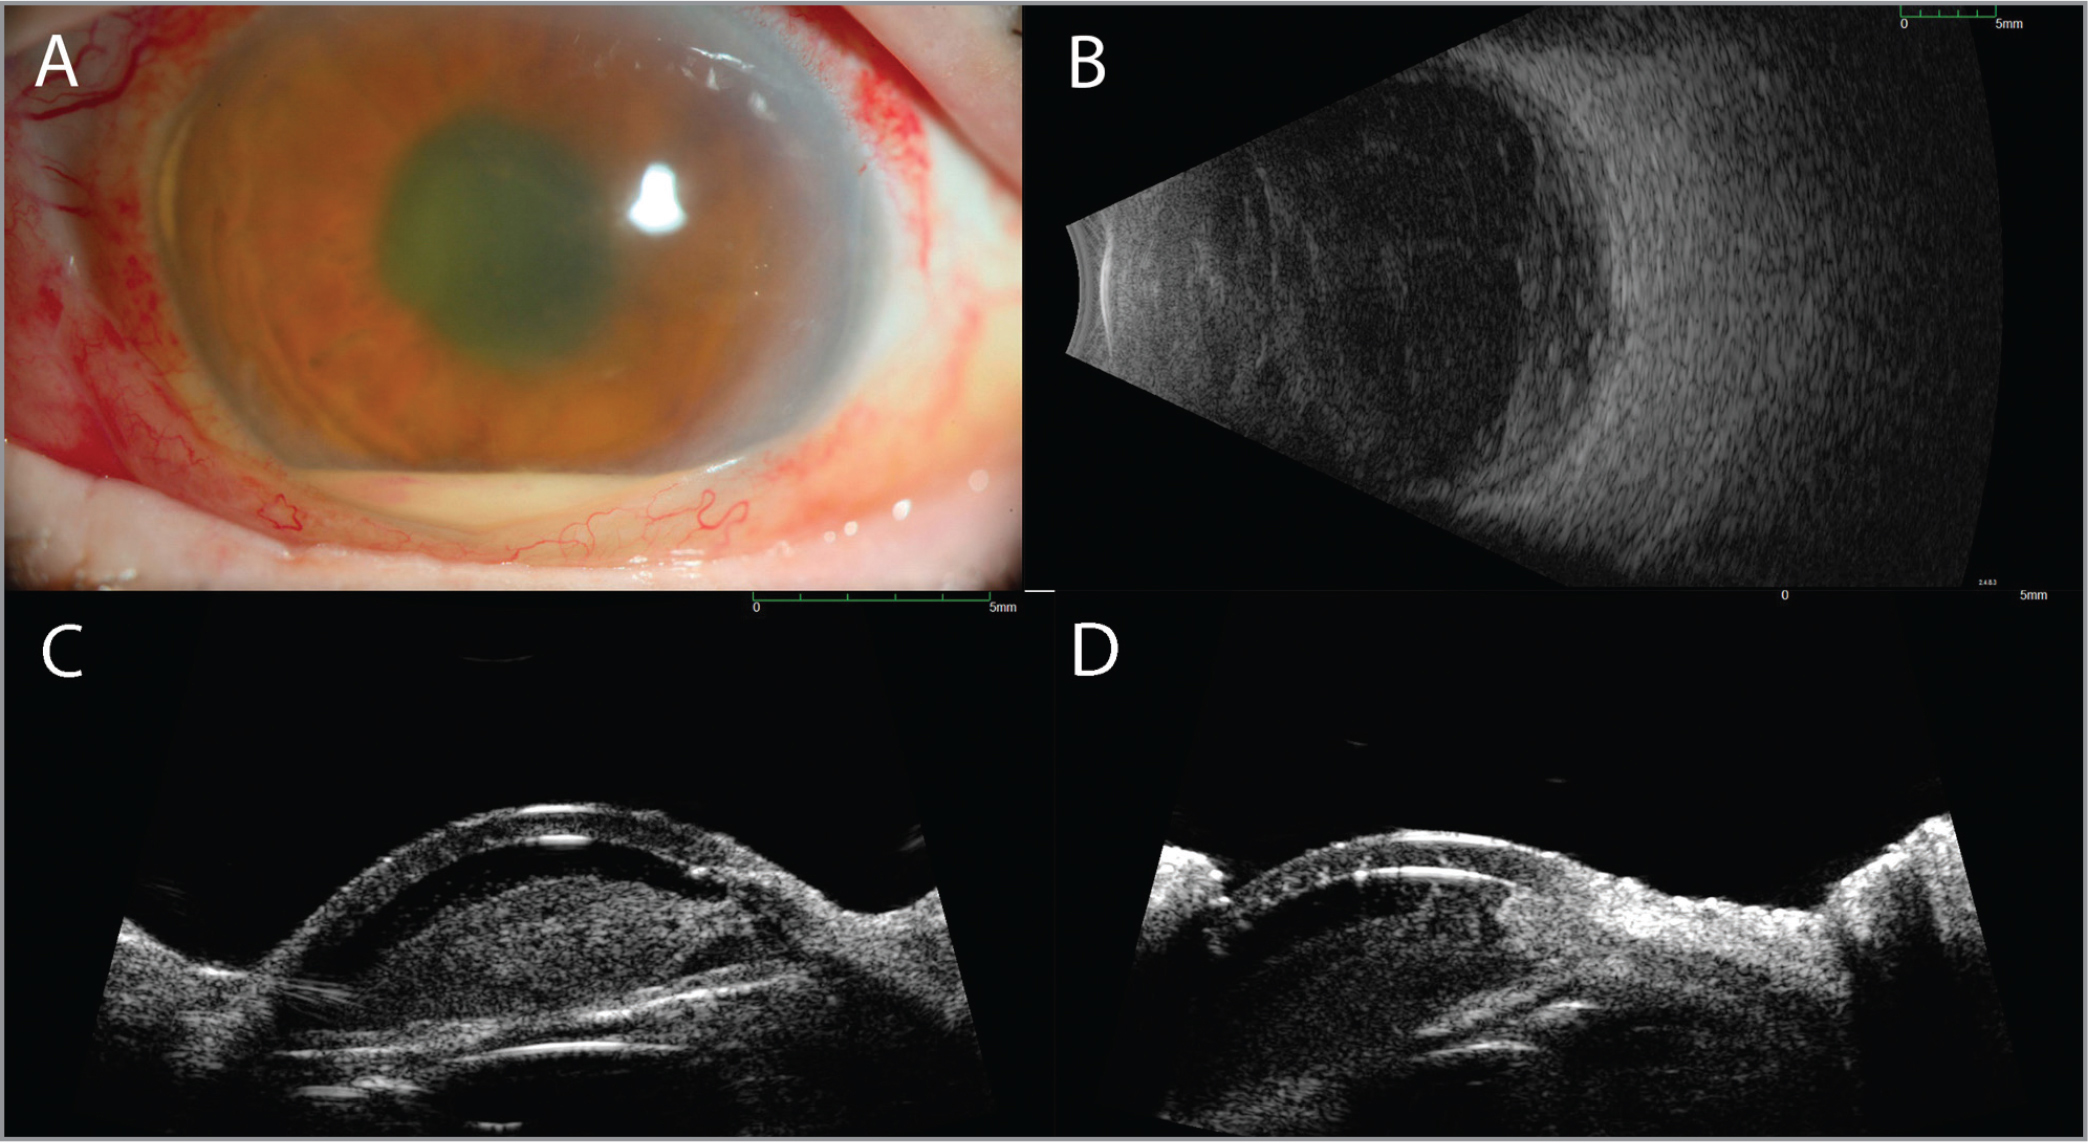 Clinical images of the left eye in an 81-year-old female who presented in November 2016 with 1 day of sudden-onset vision loss (light perception visual acuity on presentation) and evidence of intraocular inflammation. Slit-lamp photography (A) showed evidence of a hypopyon, anterior chamber fibrin, and diffuse conjunctival injection. B-scan ultrasonography showed dense vitreous opacities and membrane formation (B), as well as dispersed anterior chamber opacities with a dense collection of tissue near the angle (C), best visualized in Panel D.